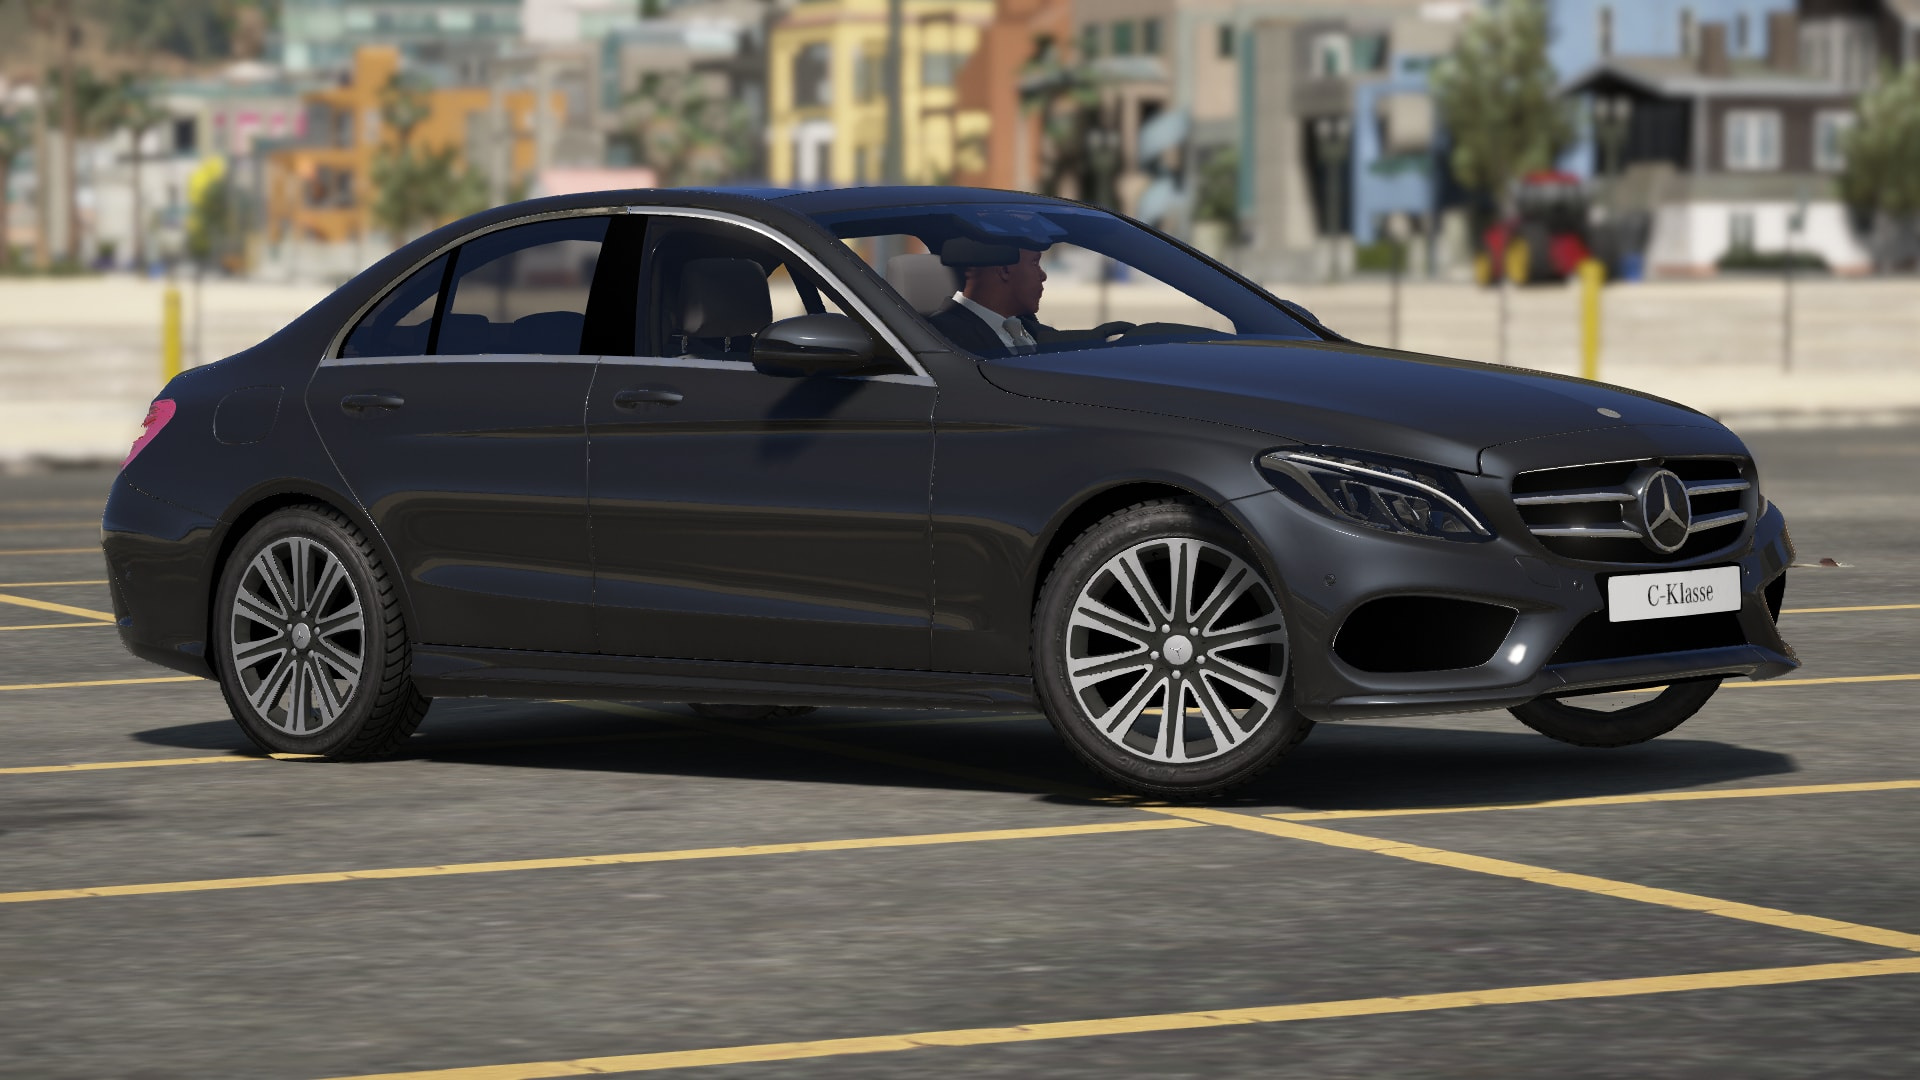 brokers detail elite class mercedes at auto benz c used